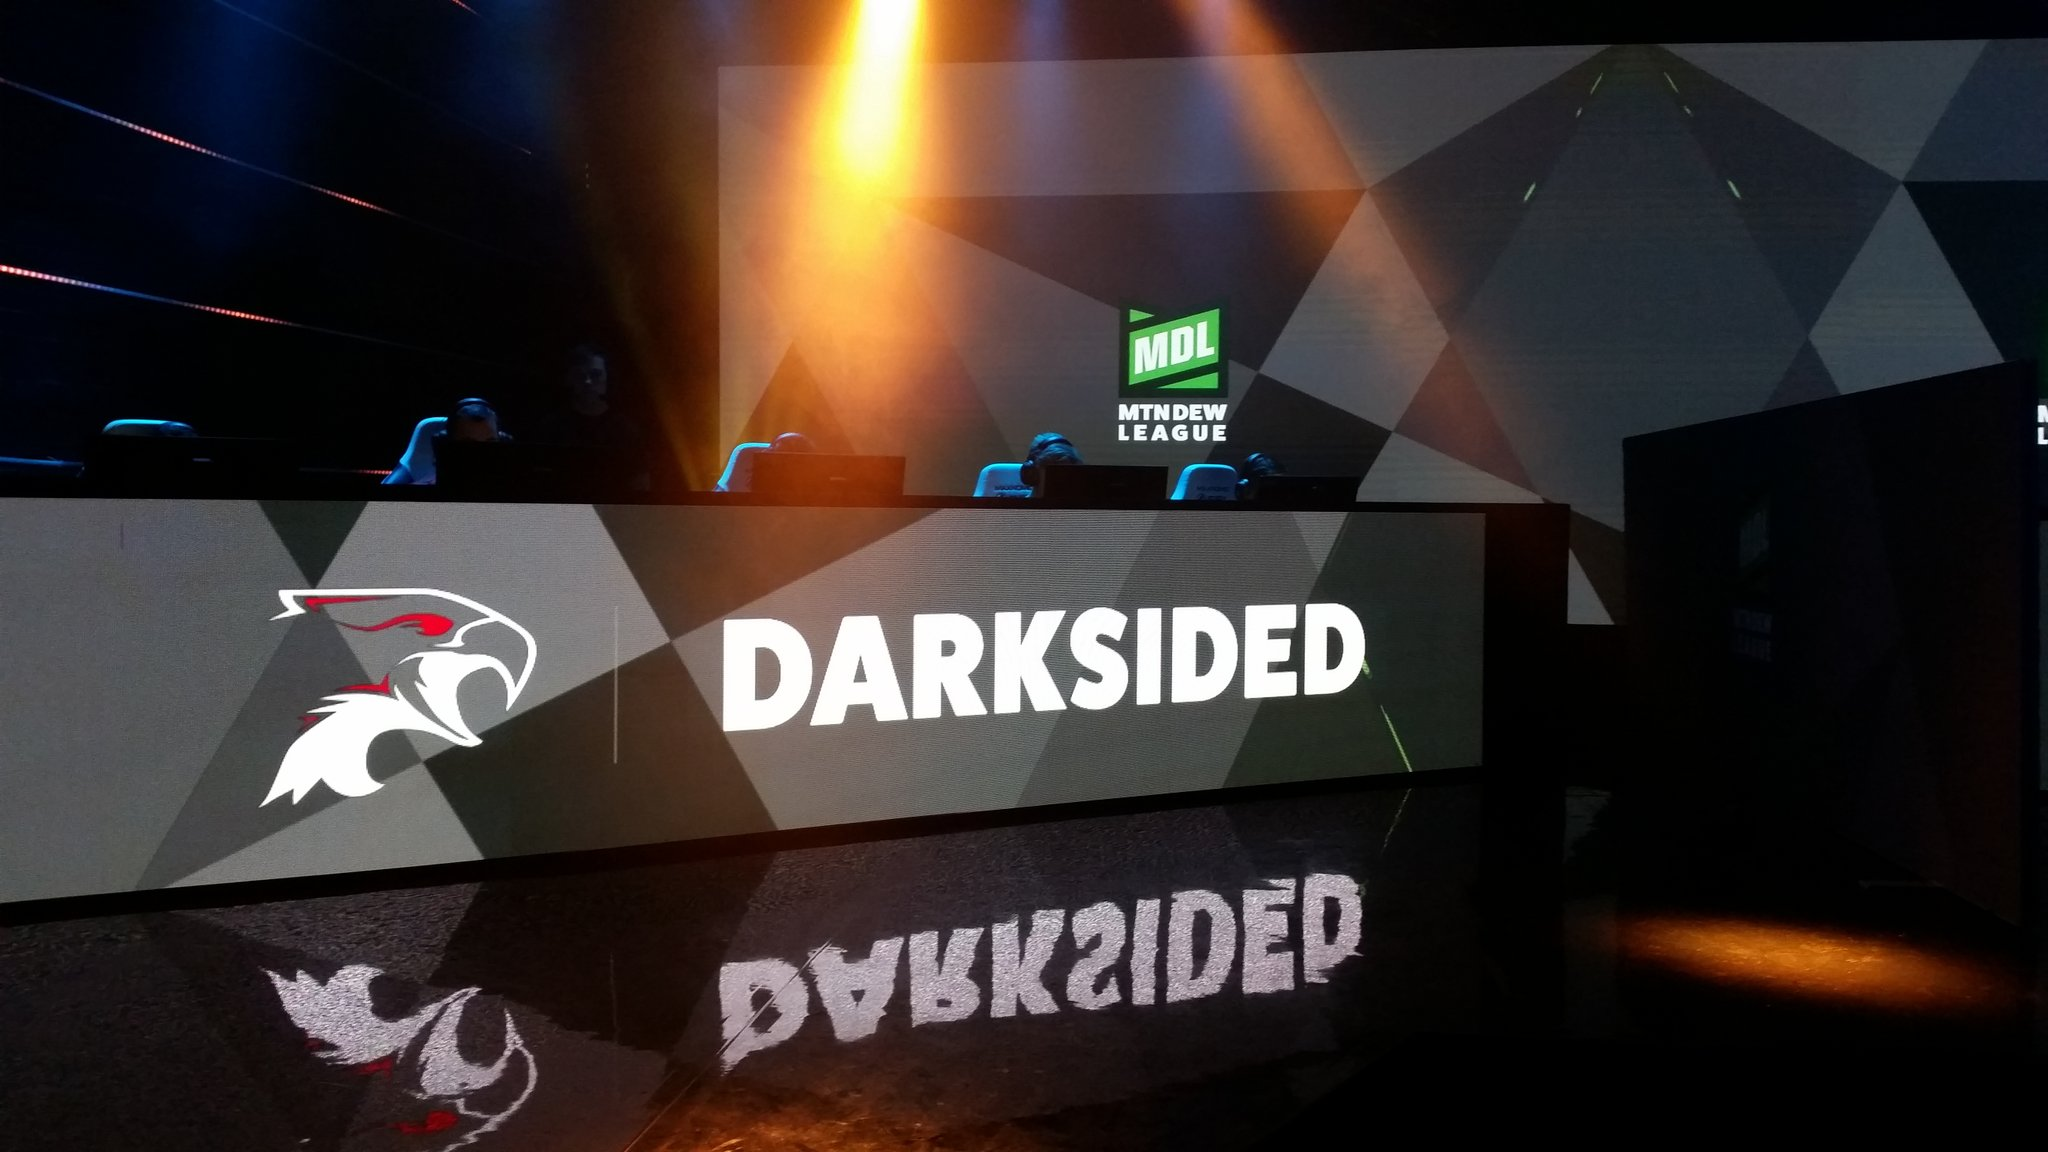 Team DarkSided